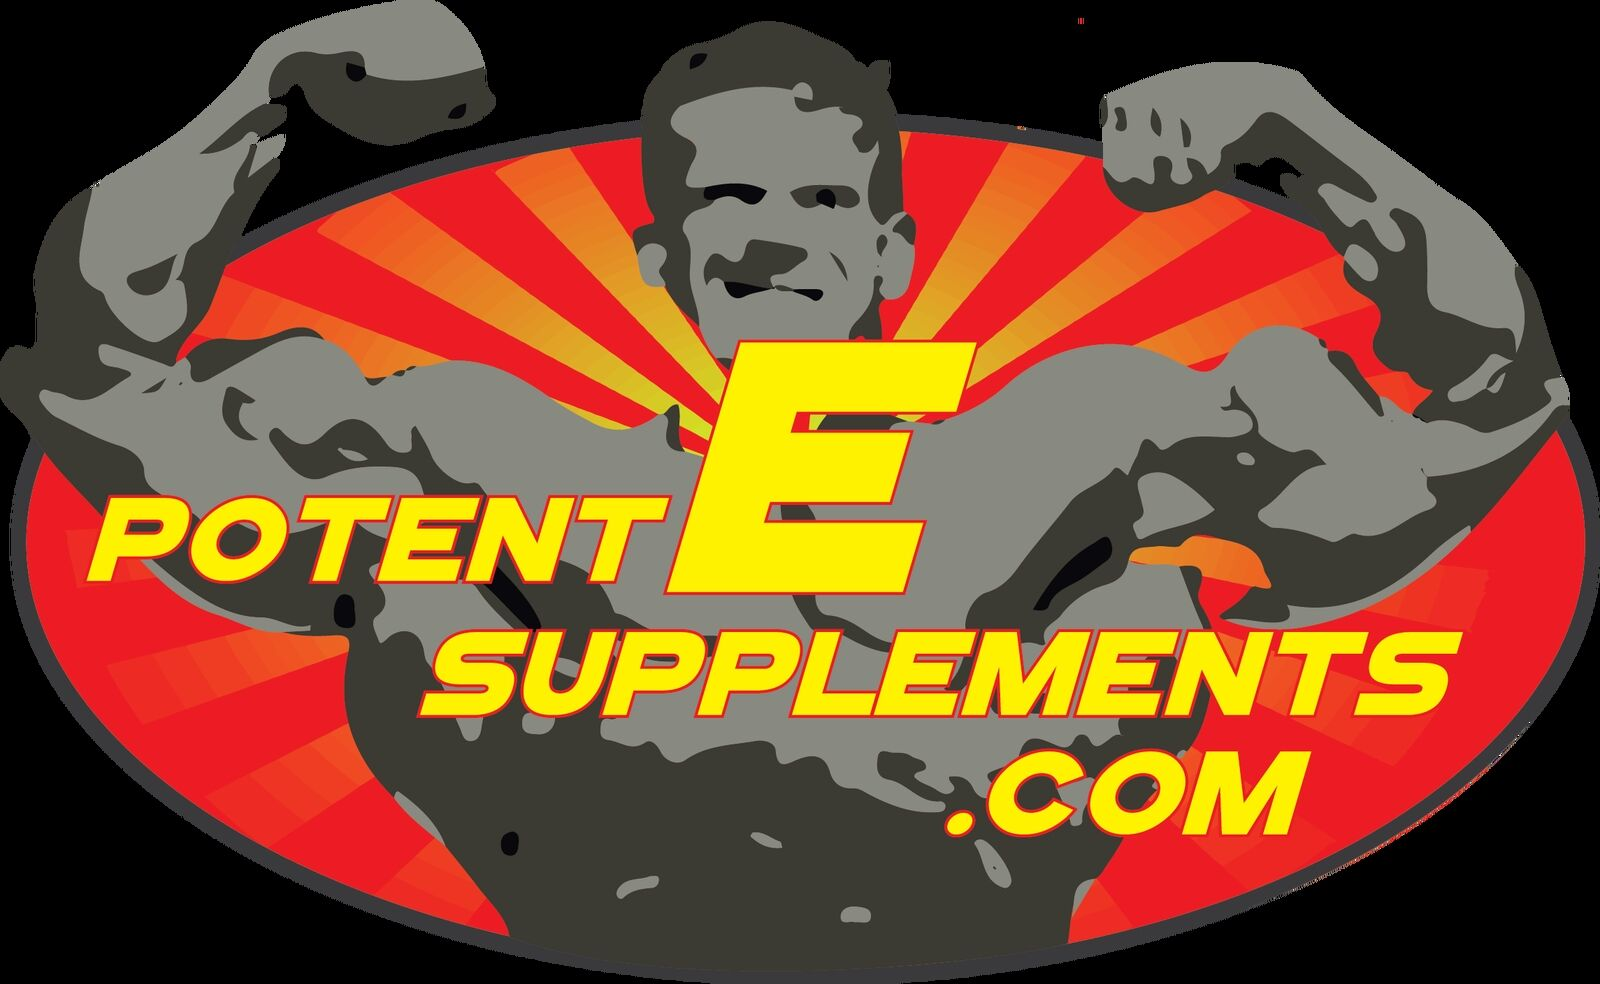 Potent E Supplements